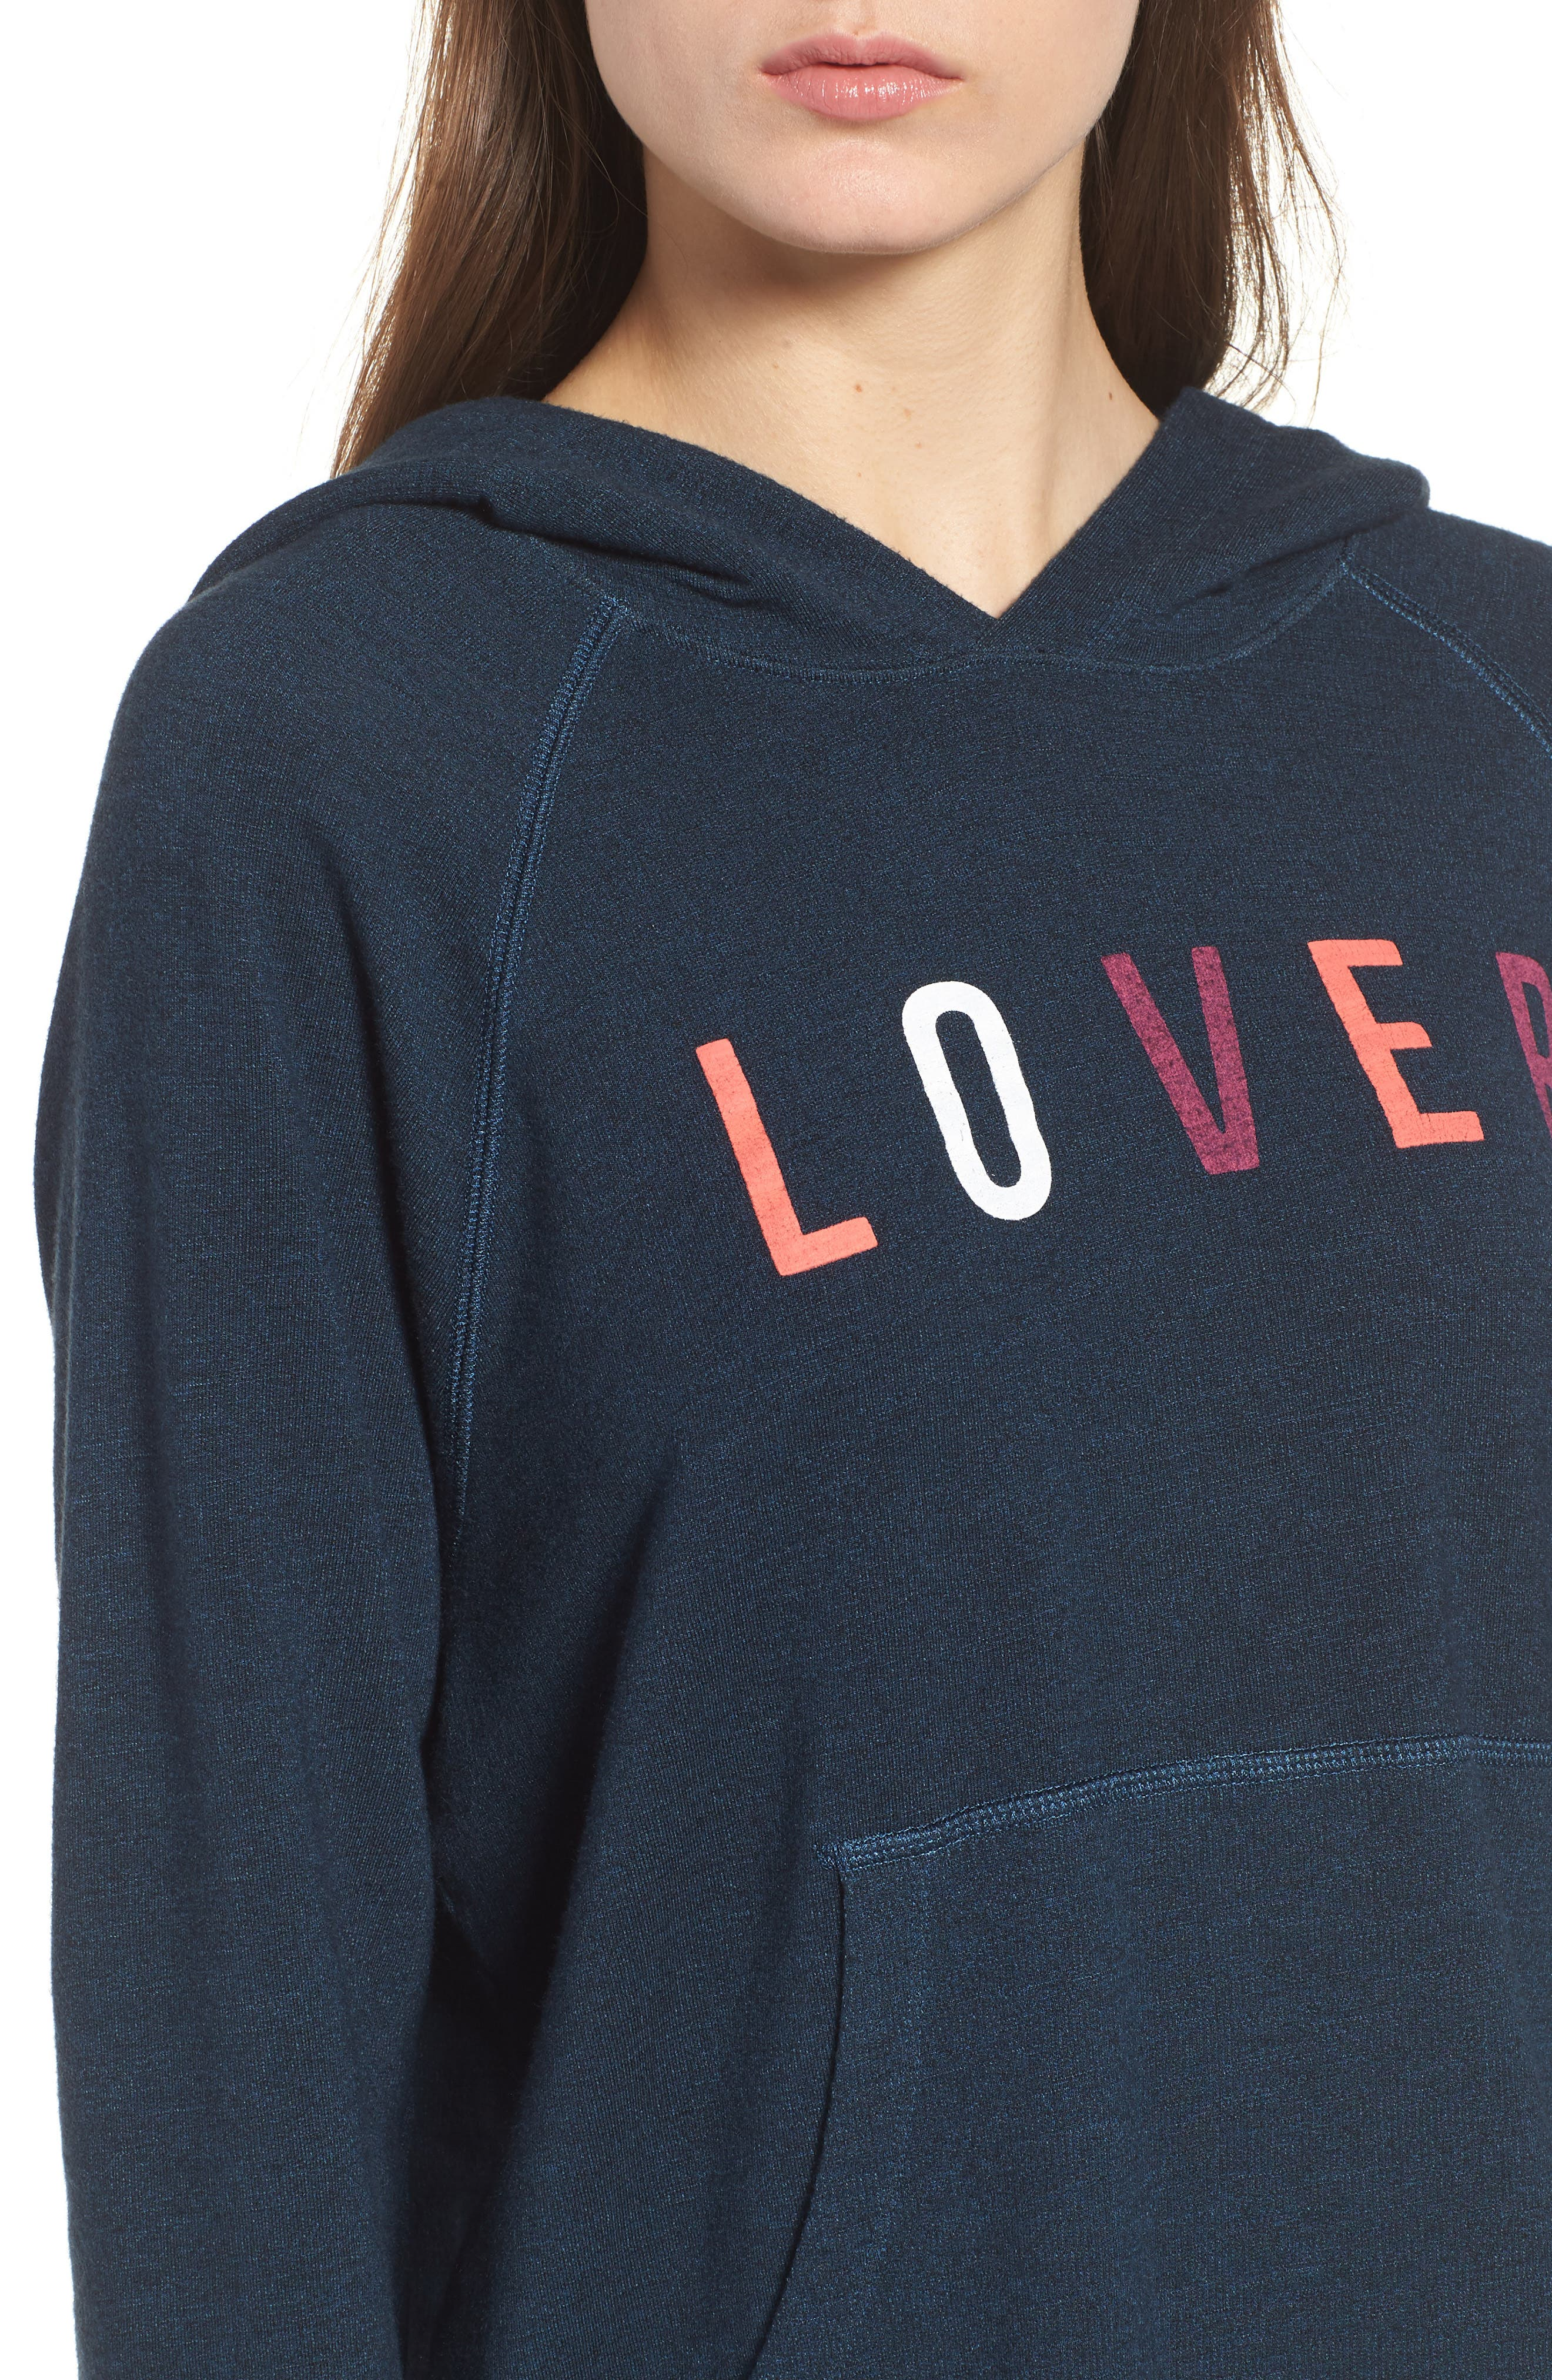 SUNDRY,                             Lover Active Crop Hoodie,                             Alternate thumbnail 4, color,                             405